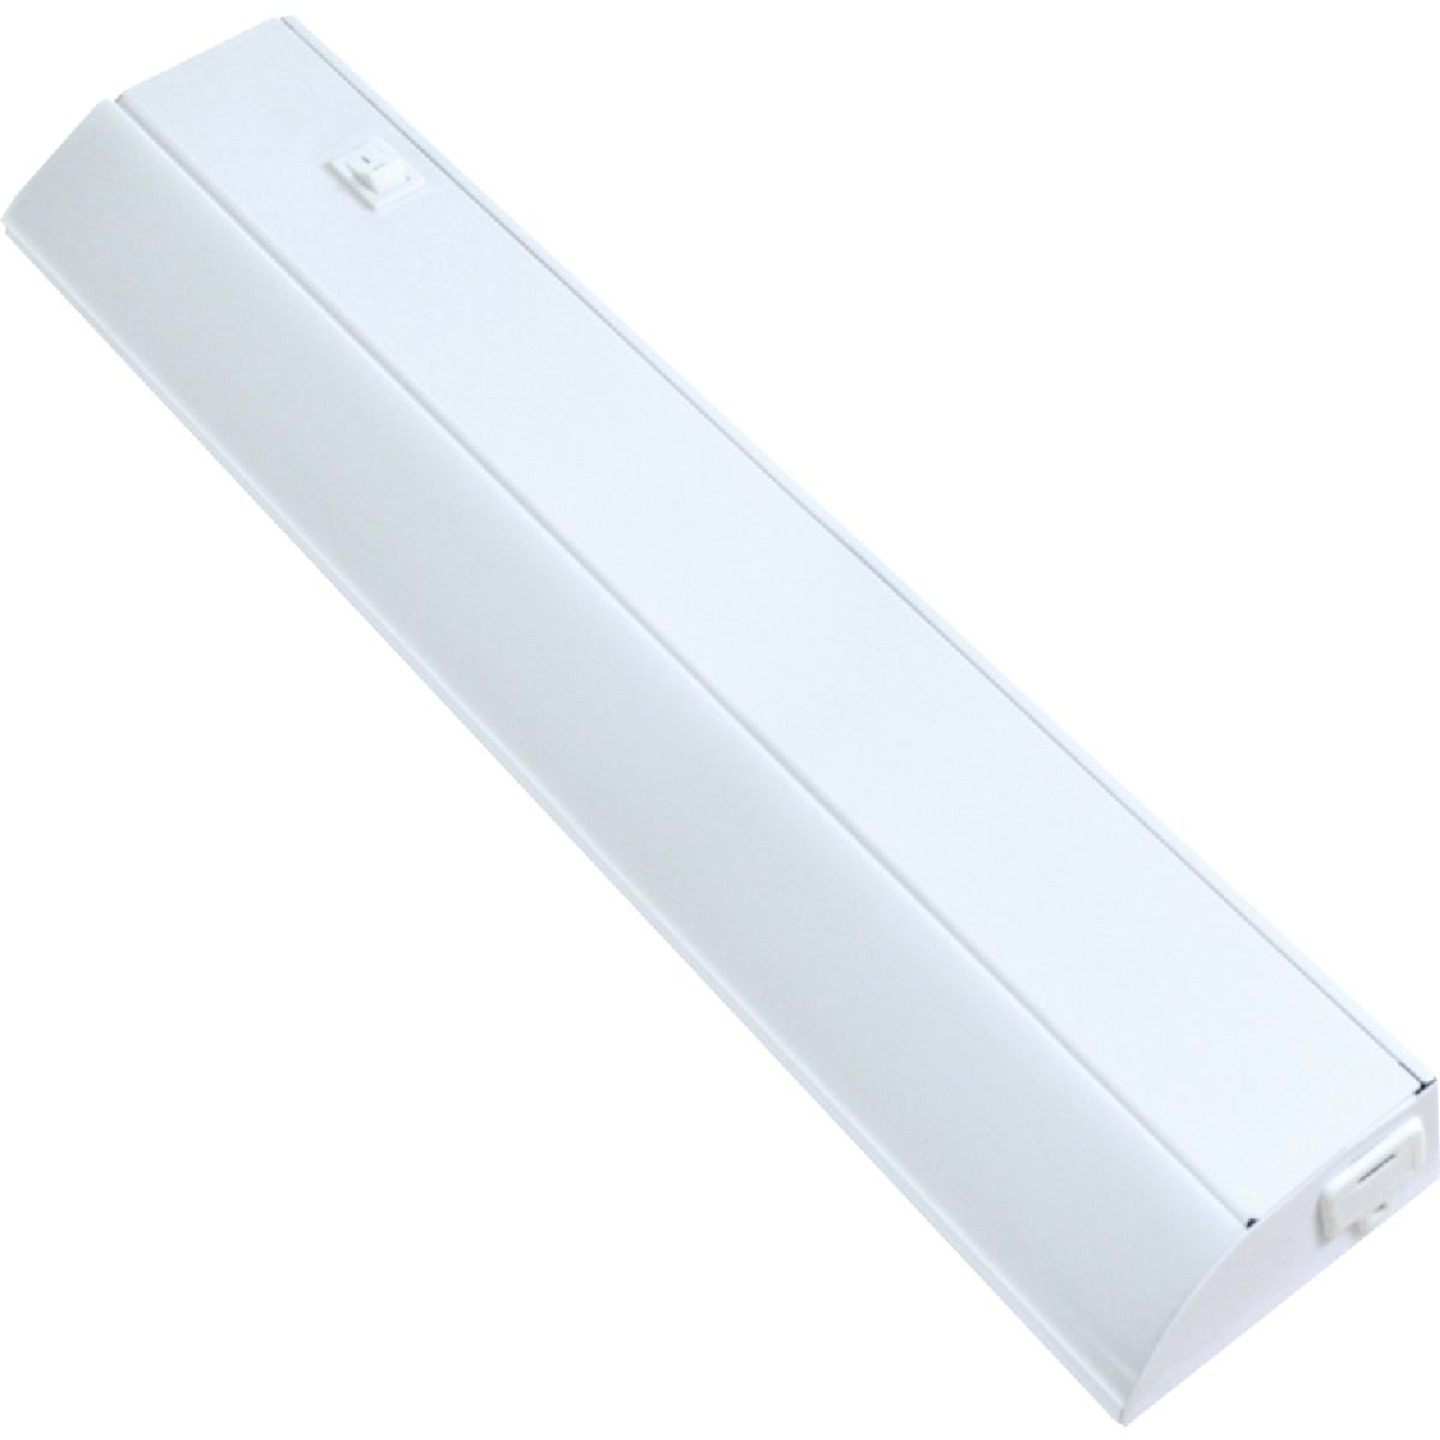 Good Earth Lighting 18 In. Direct Wire White LED Under Cabinet Light Bar Image 1